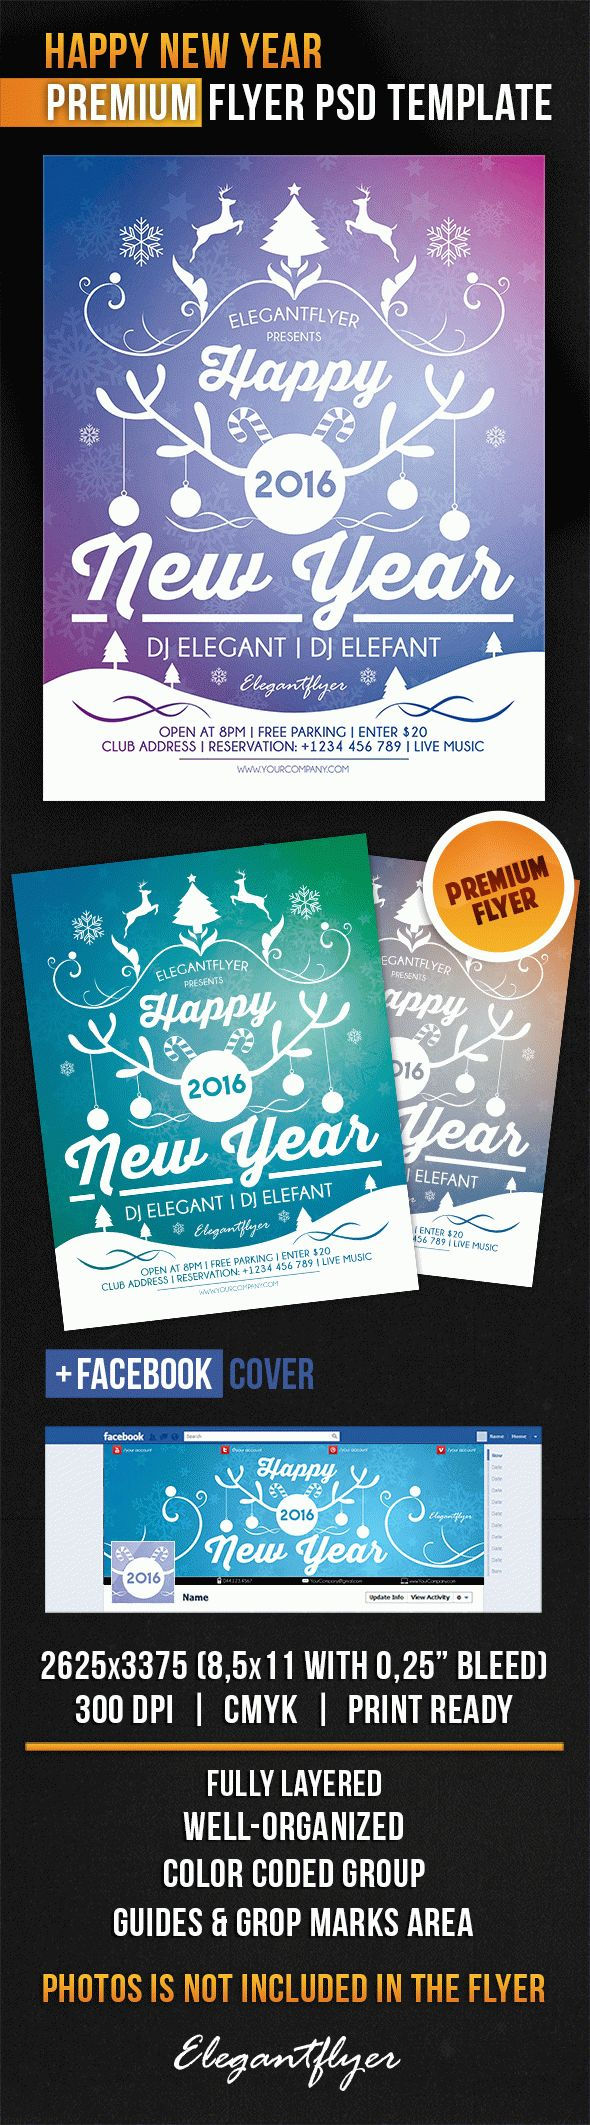 Happy New Year – Flyer PSD Template